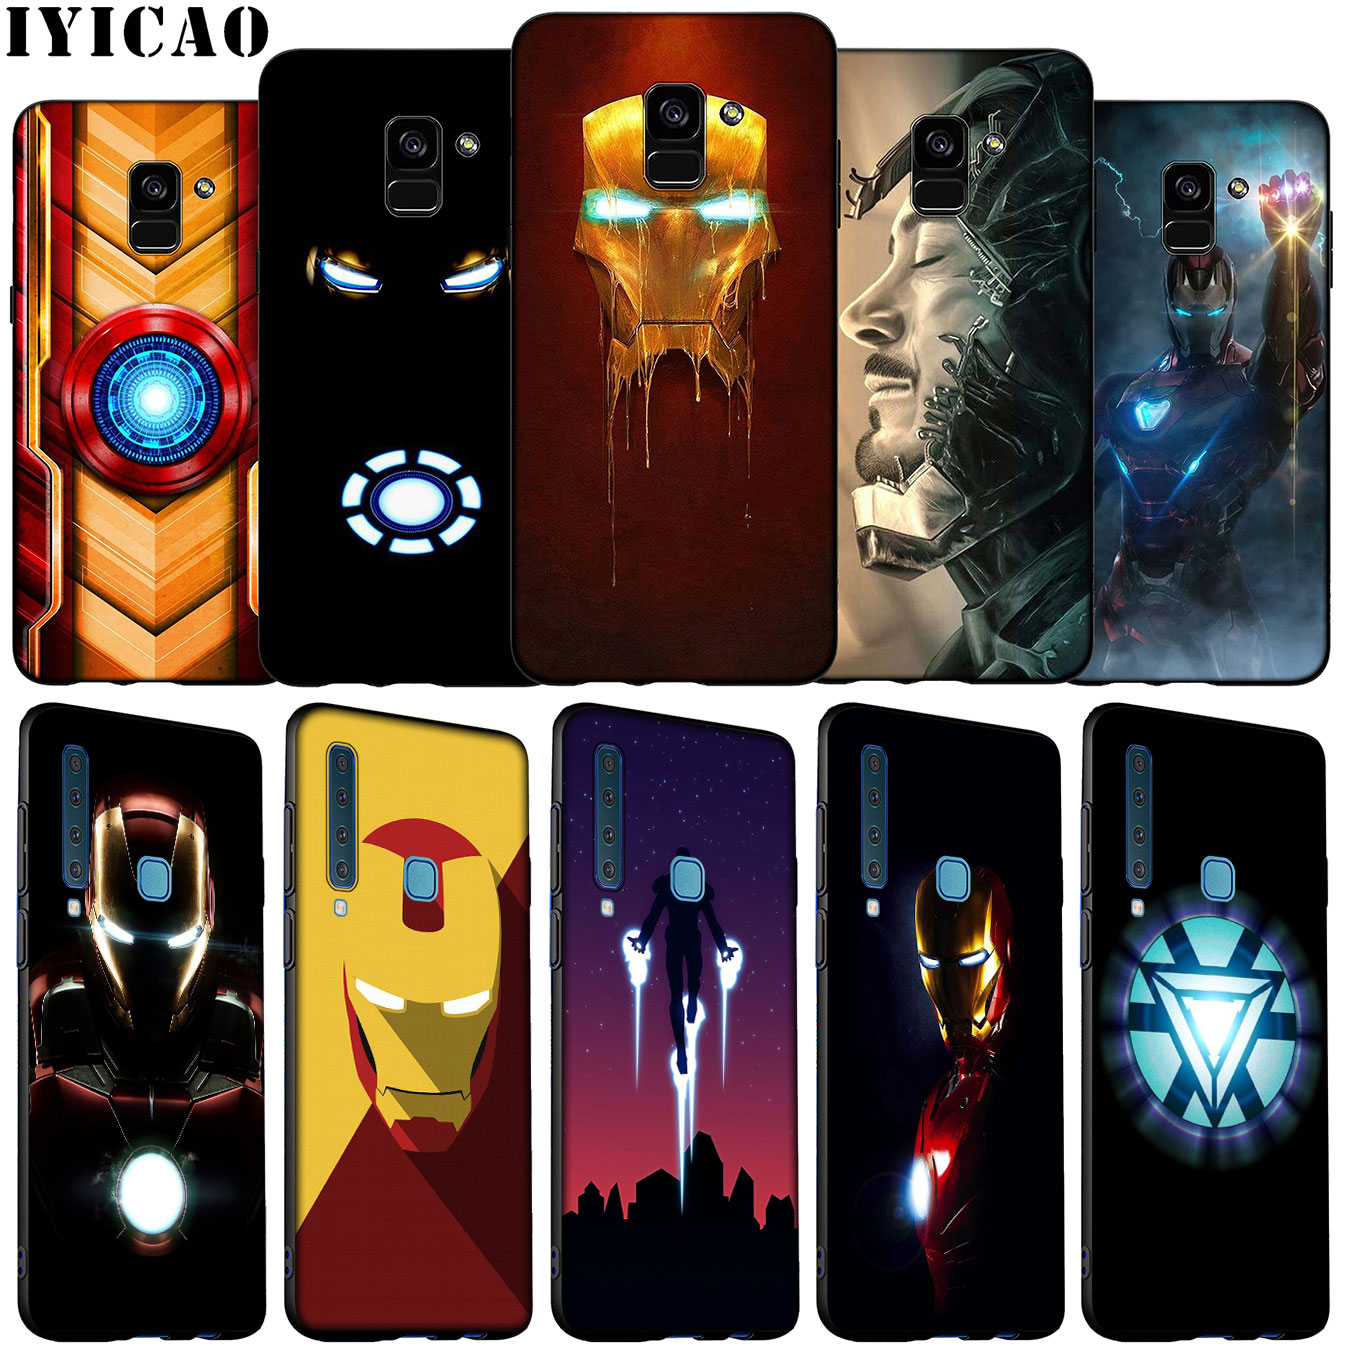 IYICAO Iron Man Marvel Ironman Soft Silicone Phone Case for Samsung Galaxy A6 A9 A8 A7 2018 A3 A5 2016 2017 Note 9 8 10 Plus image